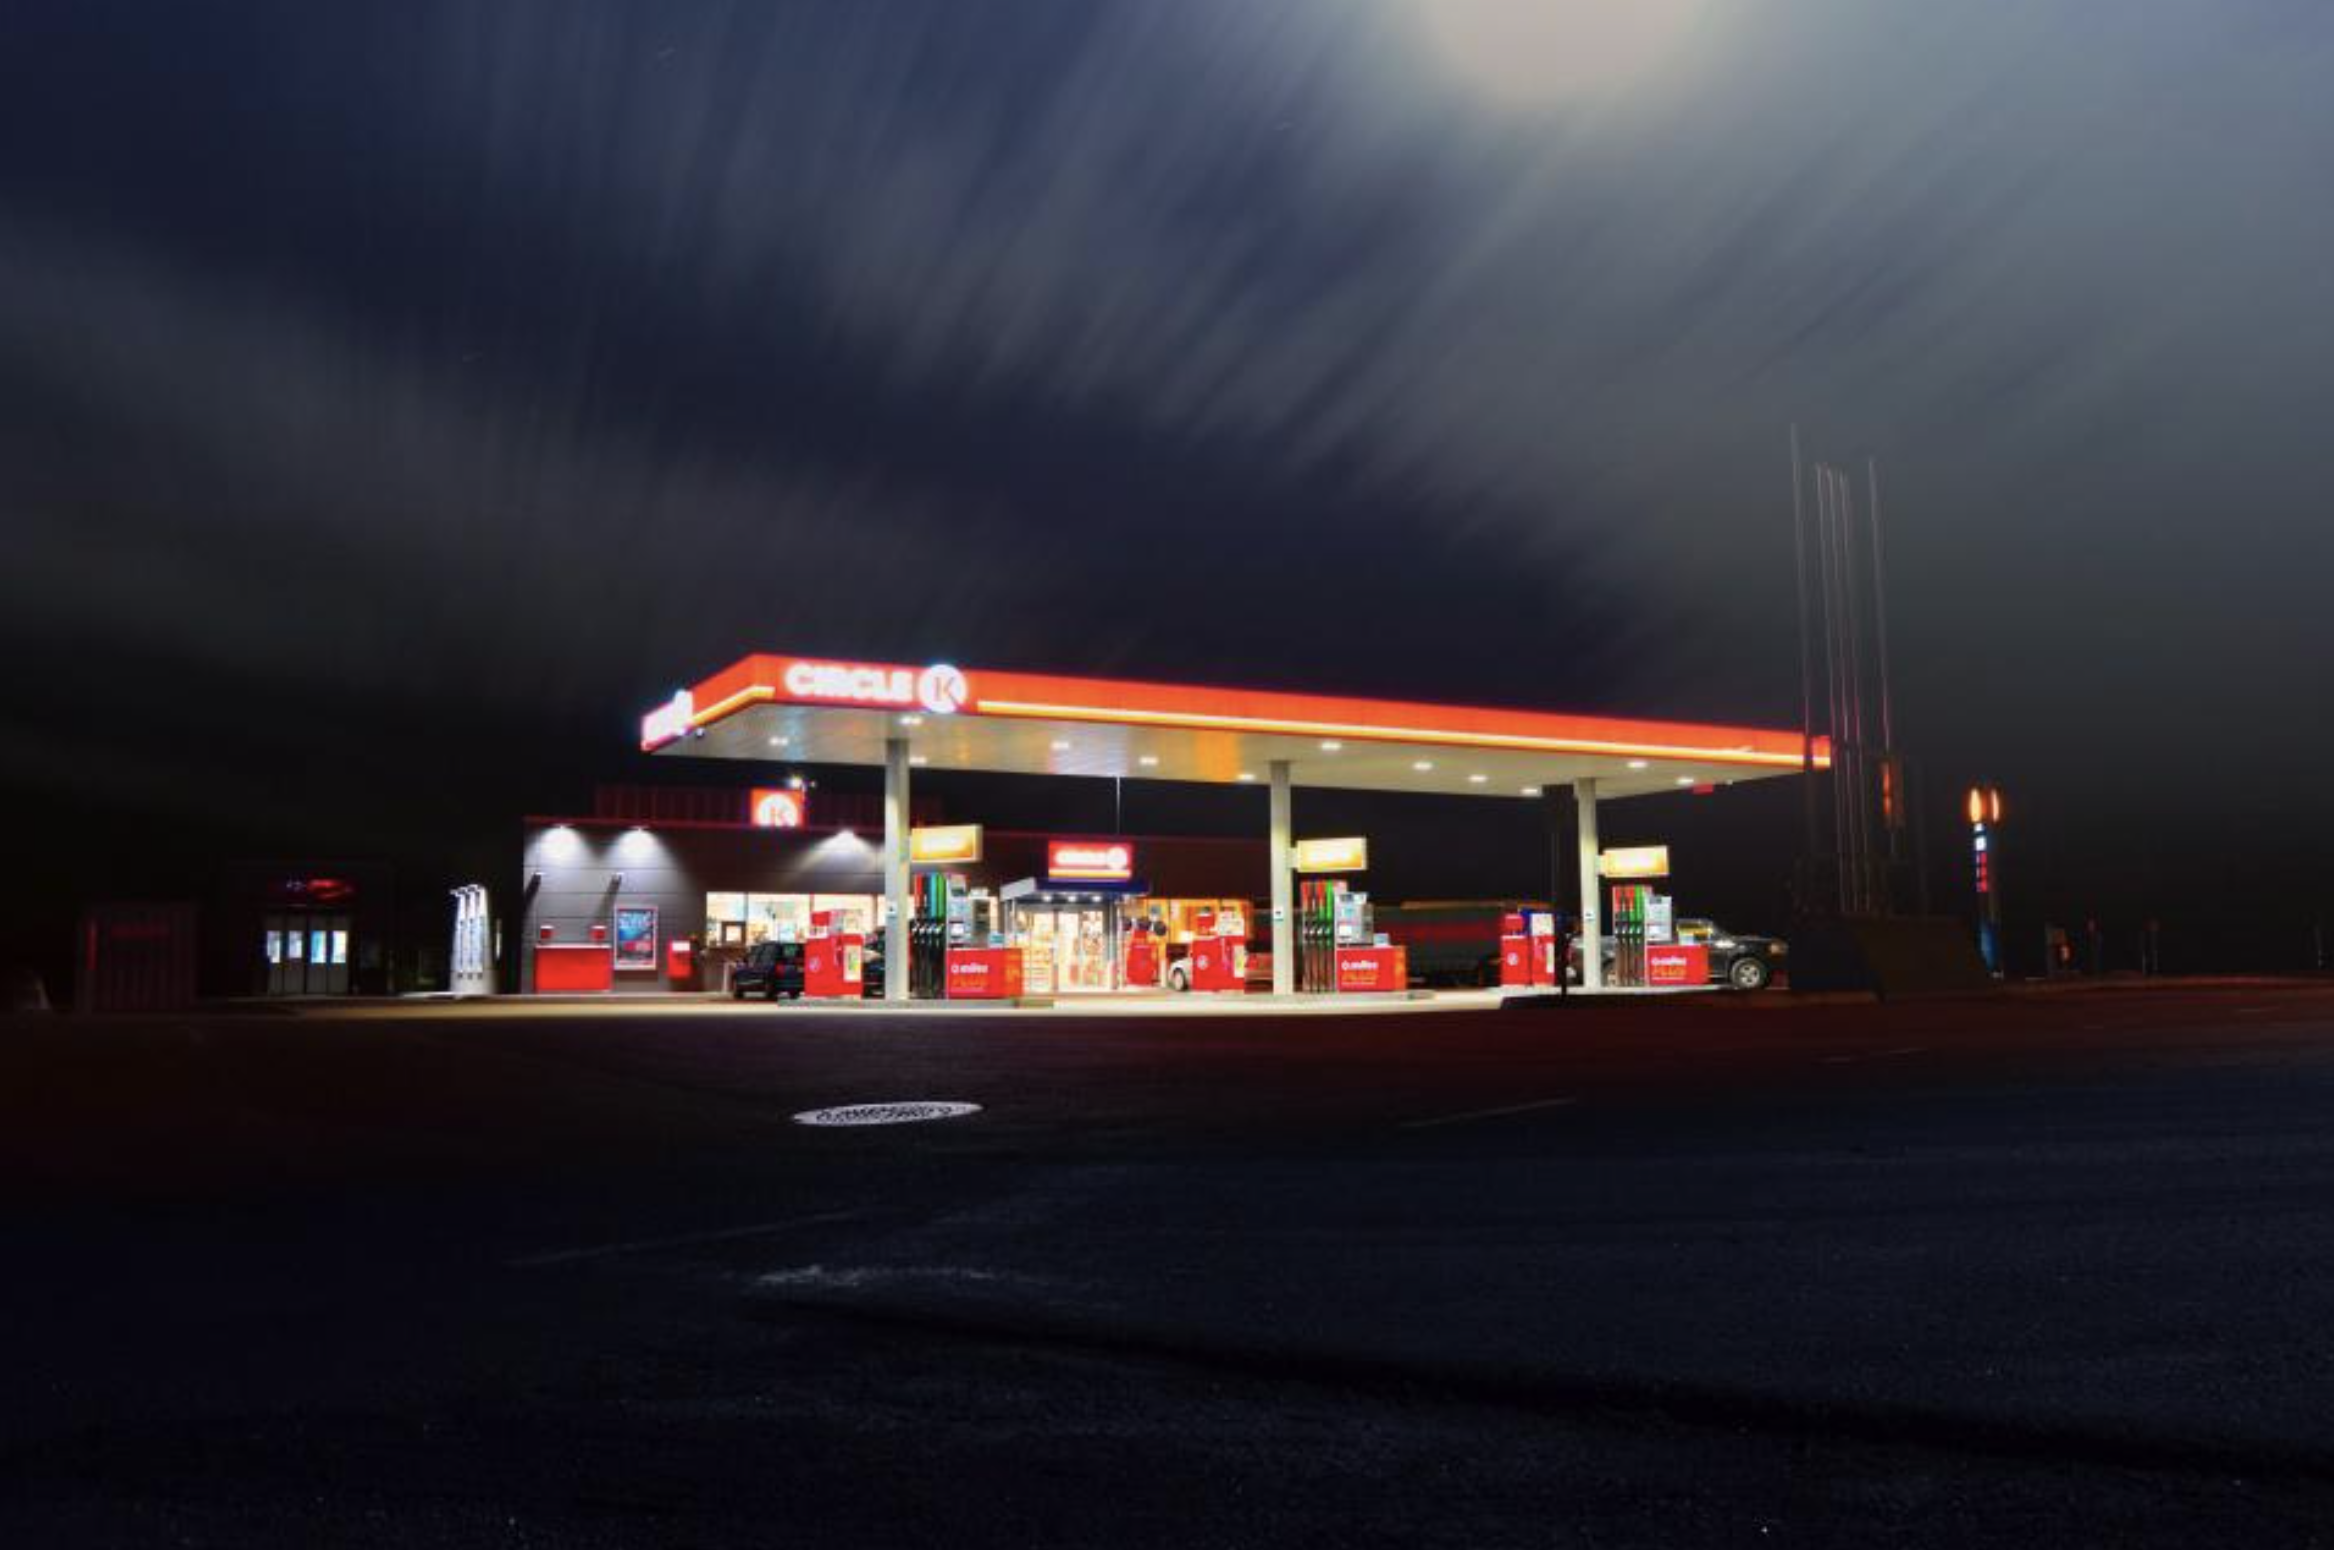 Refueling station biofuels and climate plan